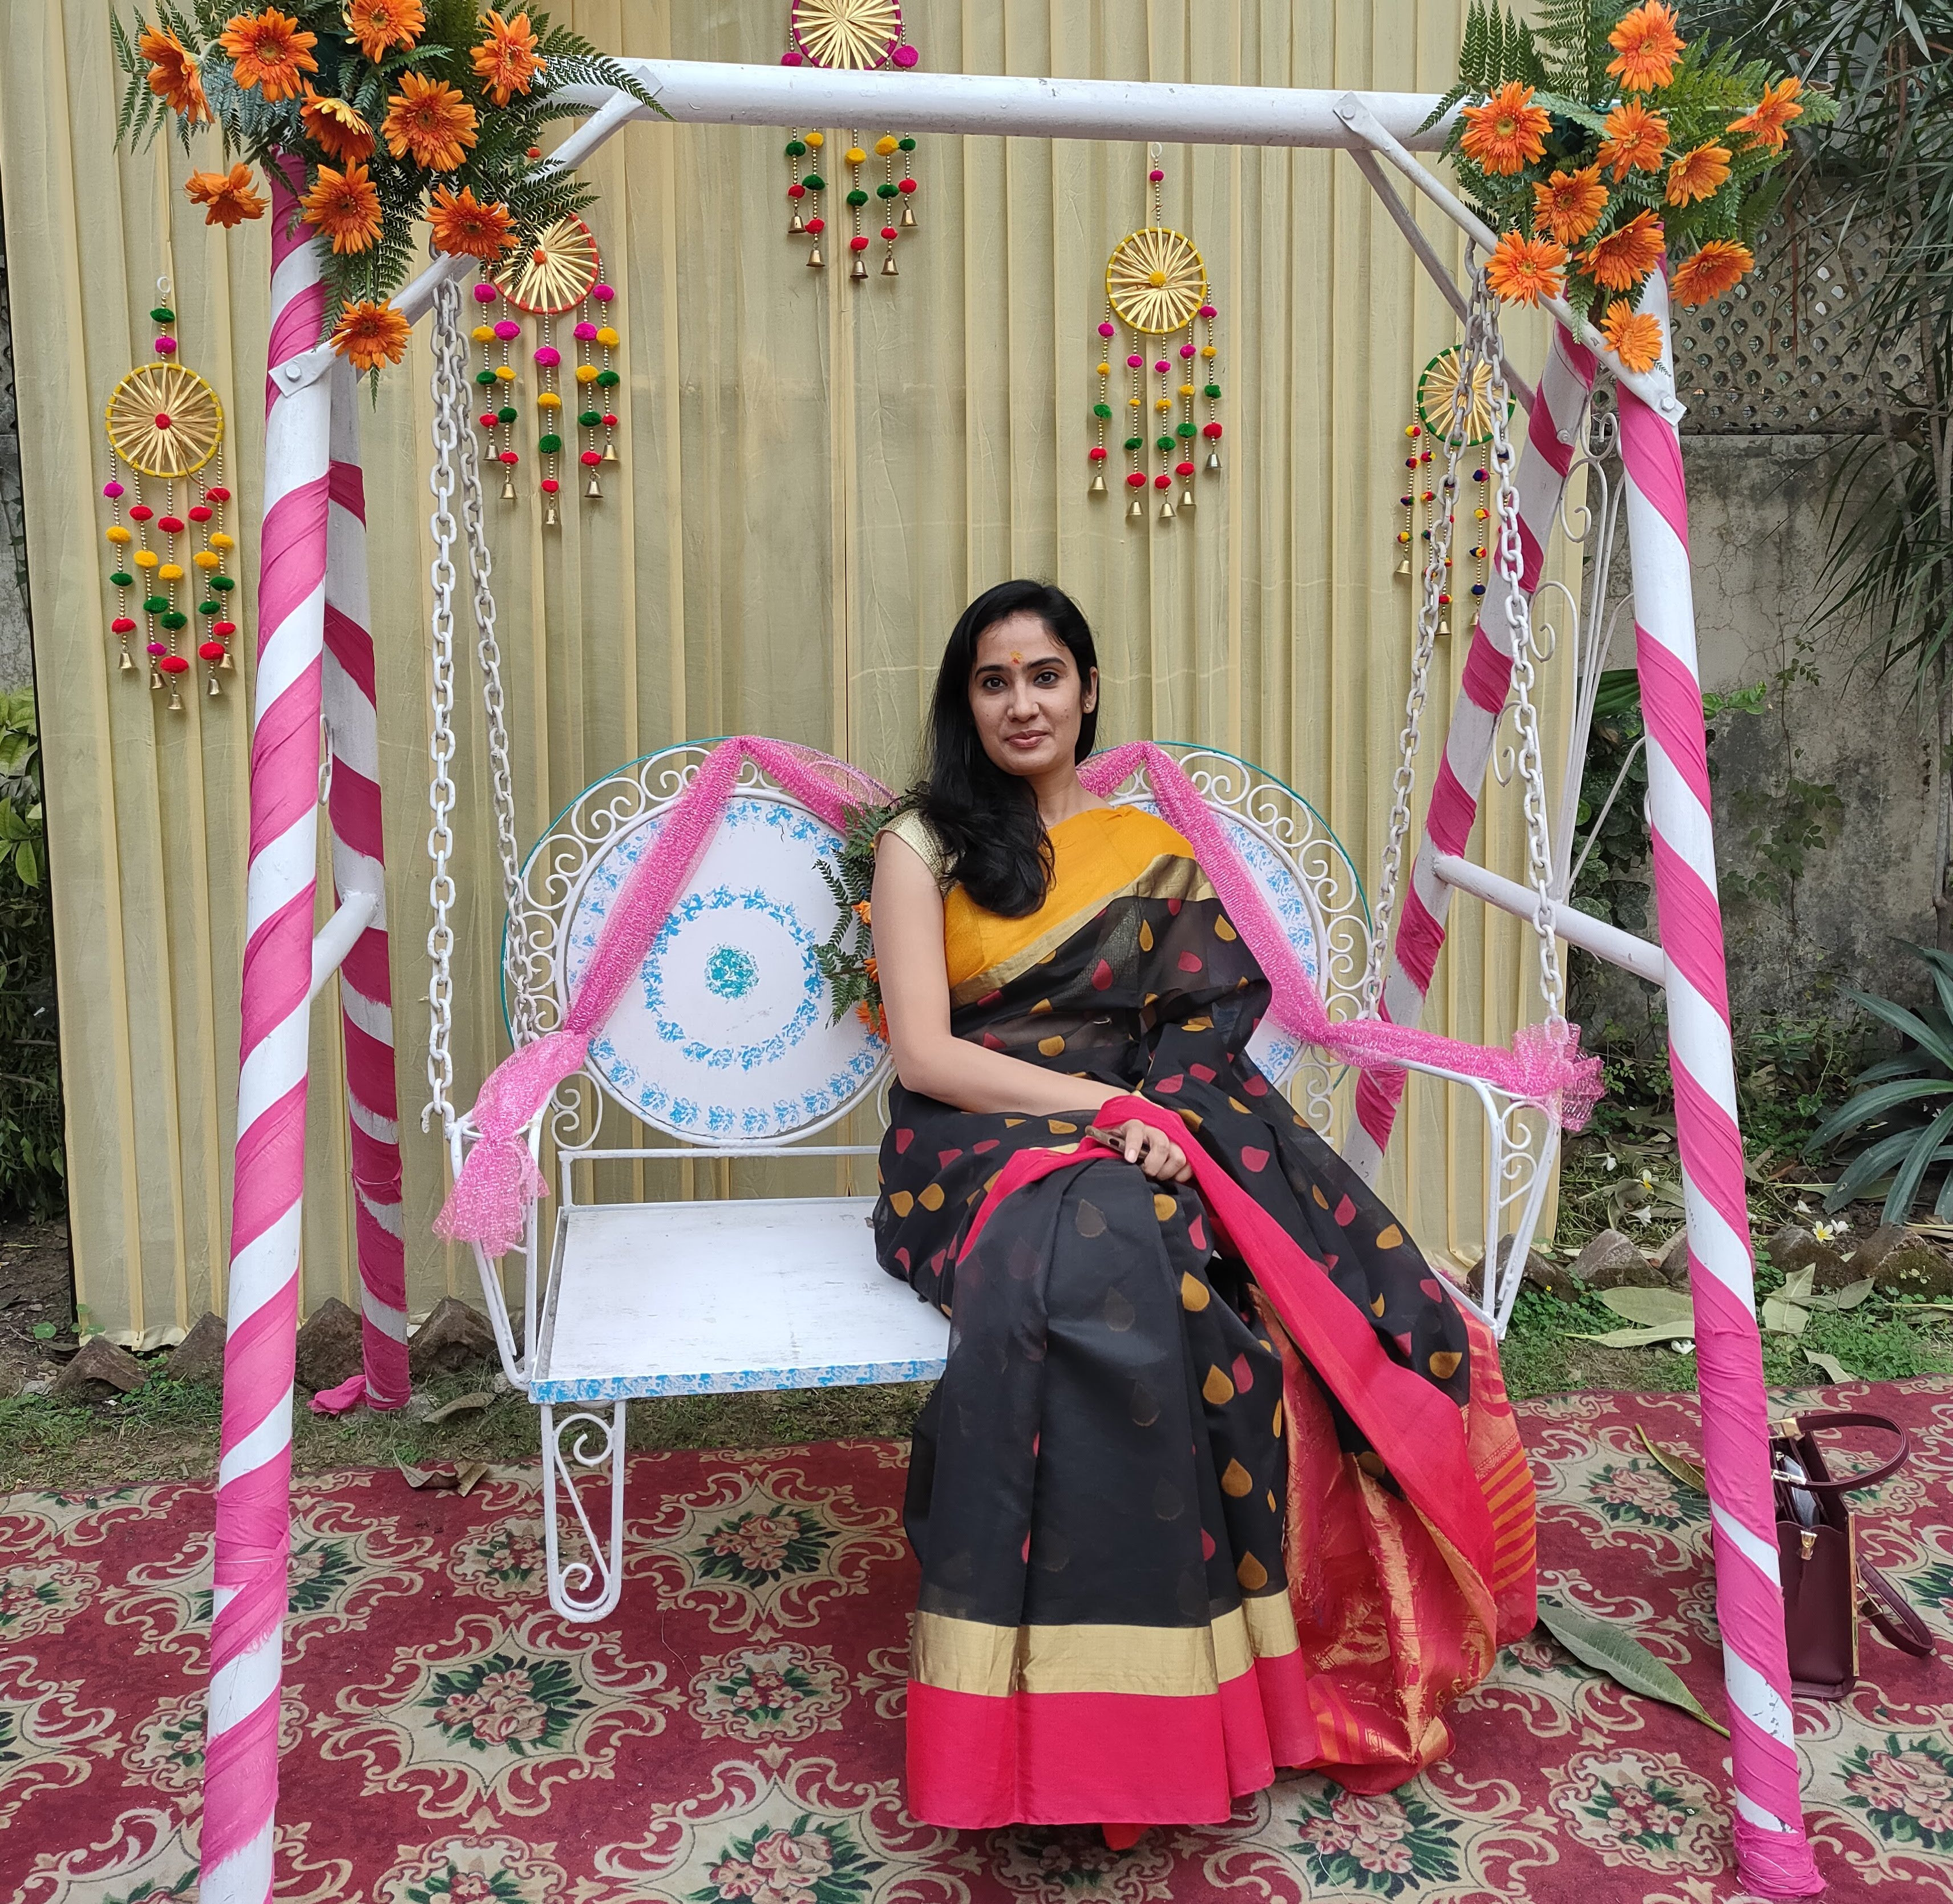 Pooja dhyani, Household Goods Relocation From Vasundhara Ghaziabad To Dehradun Uttarakhad